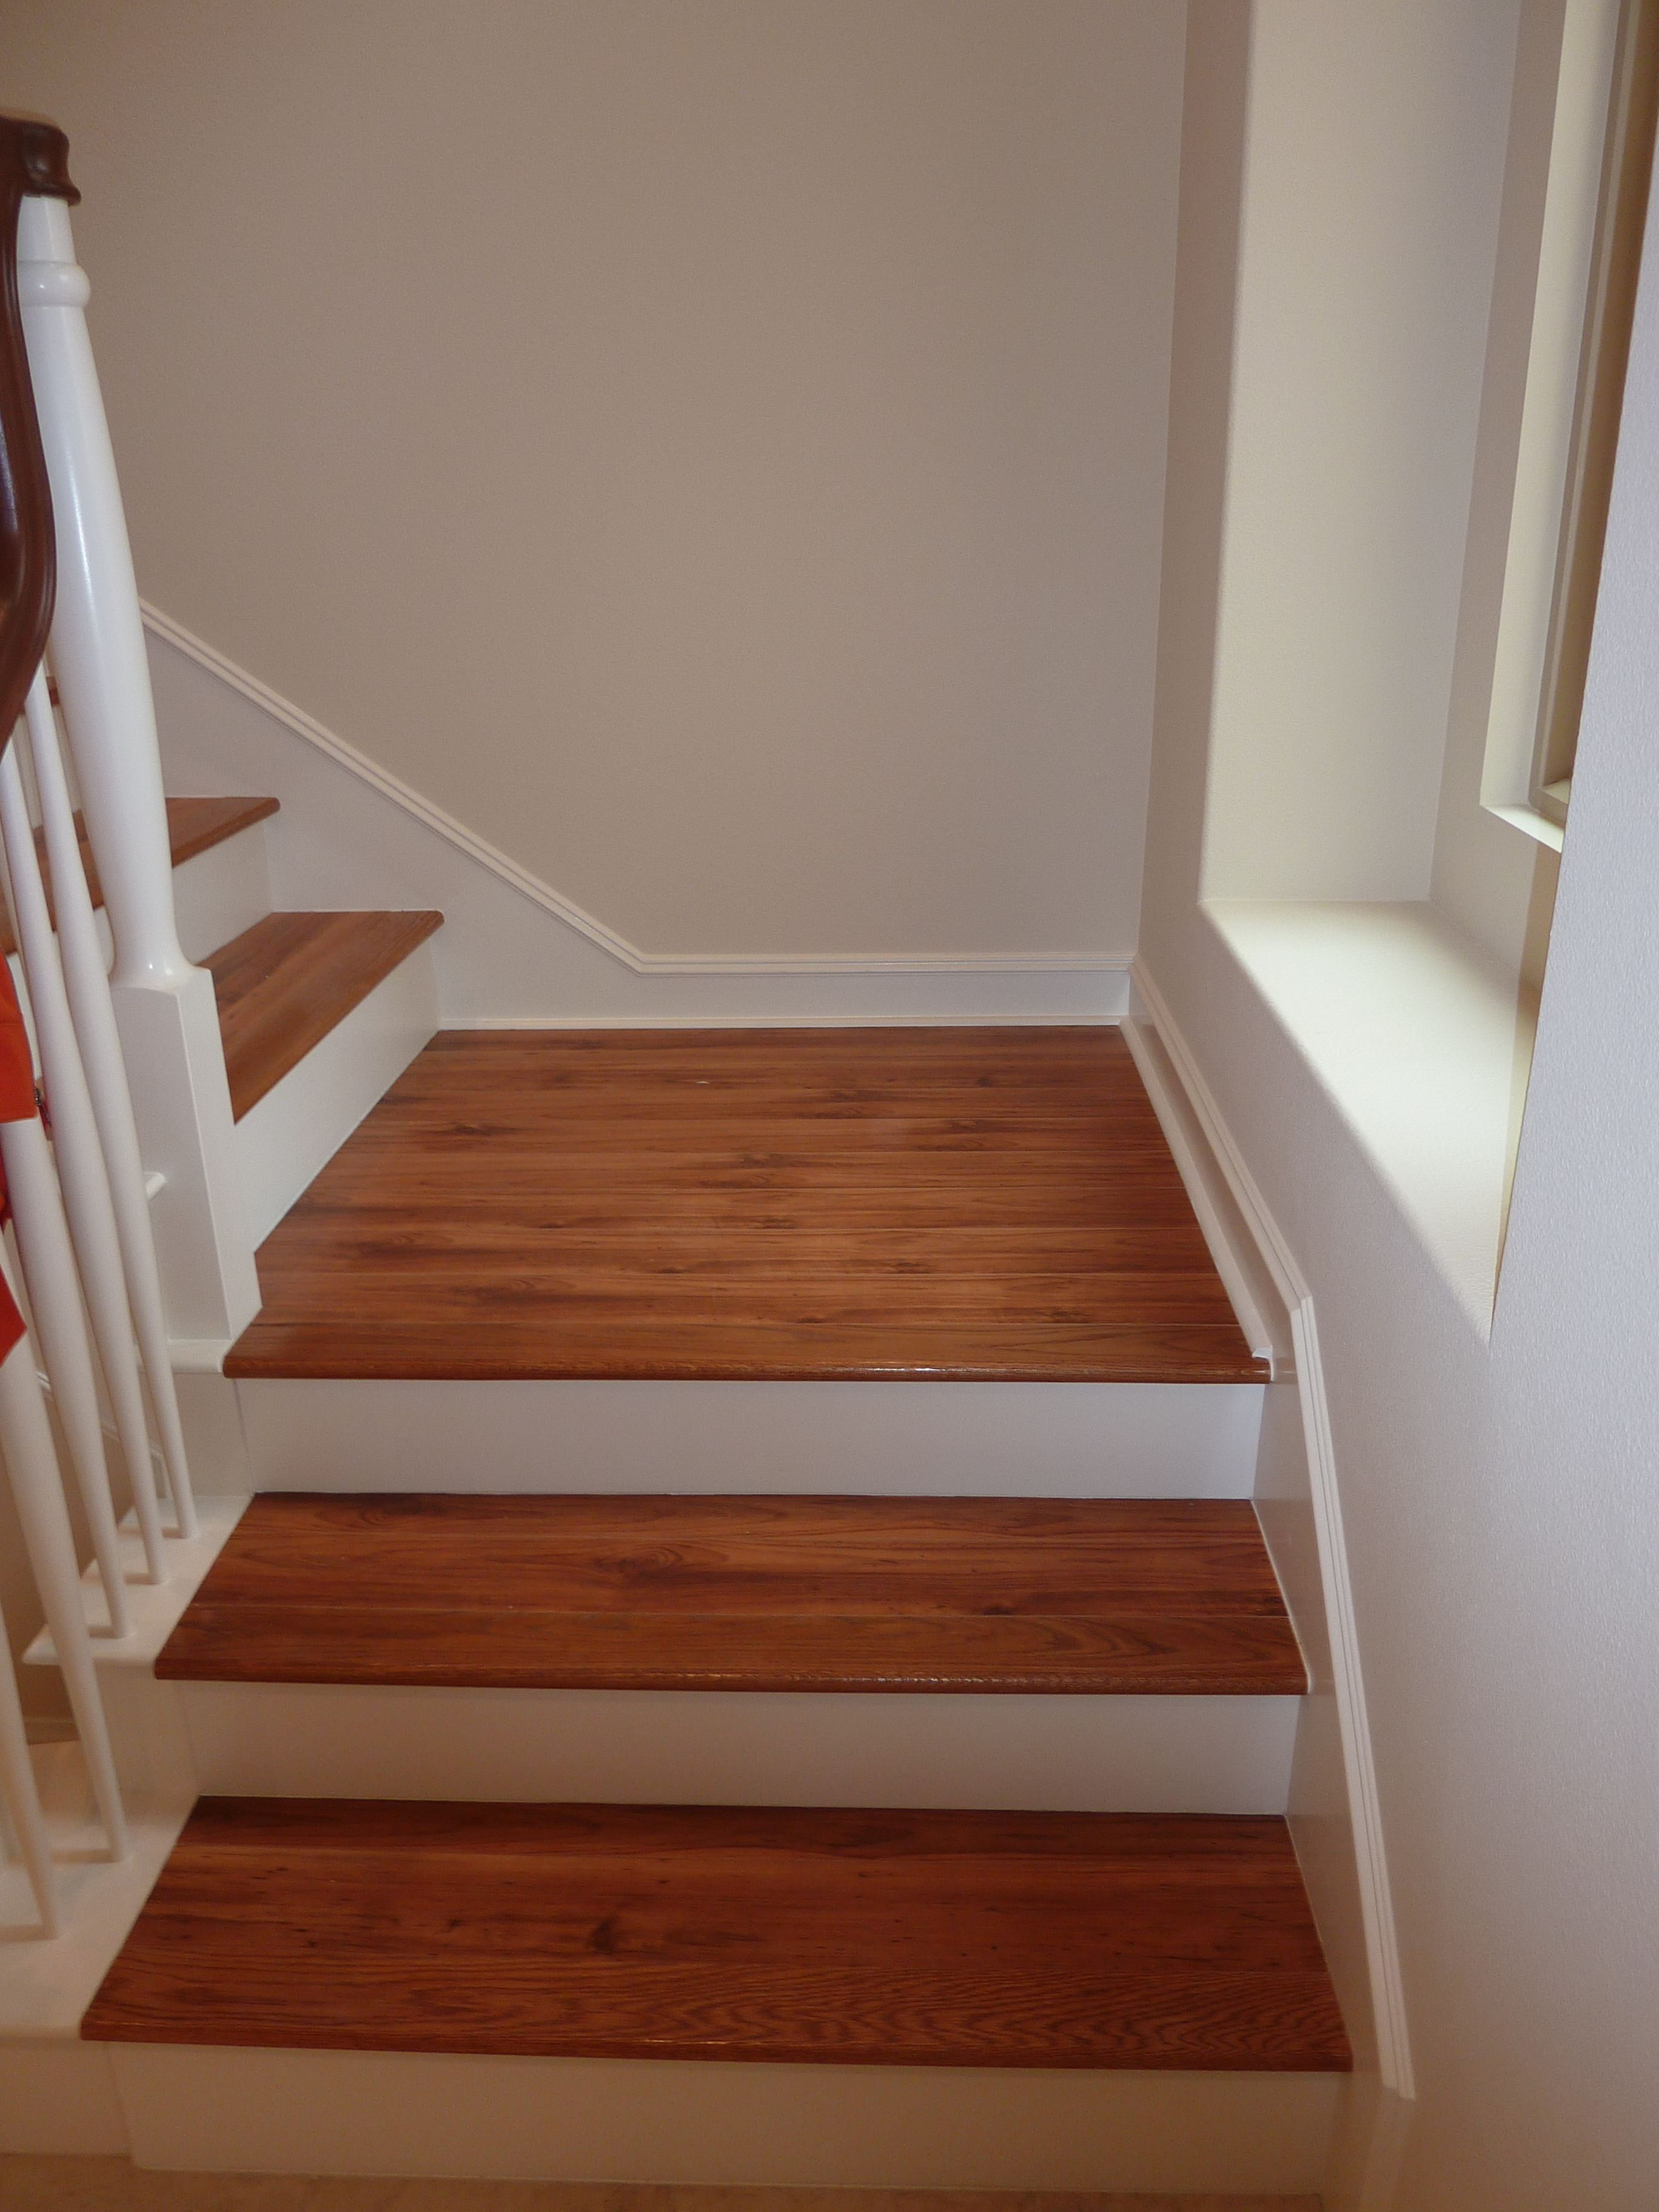 Luxurious Interior House Decor With Hardwood Flooring On The Staircase